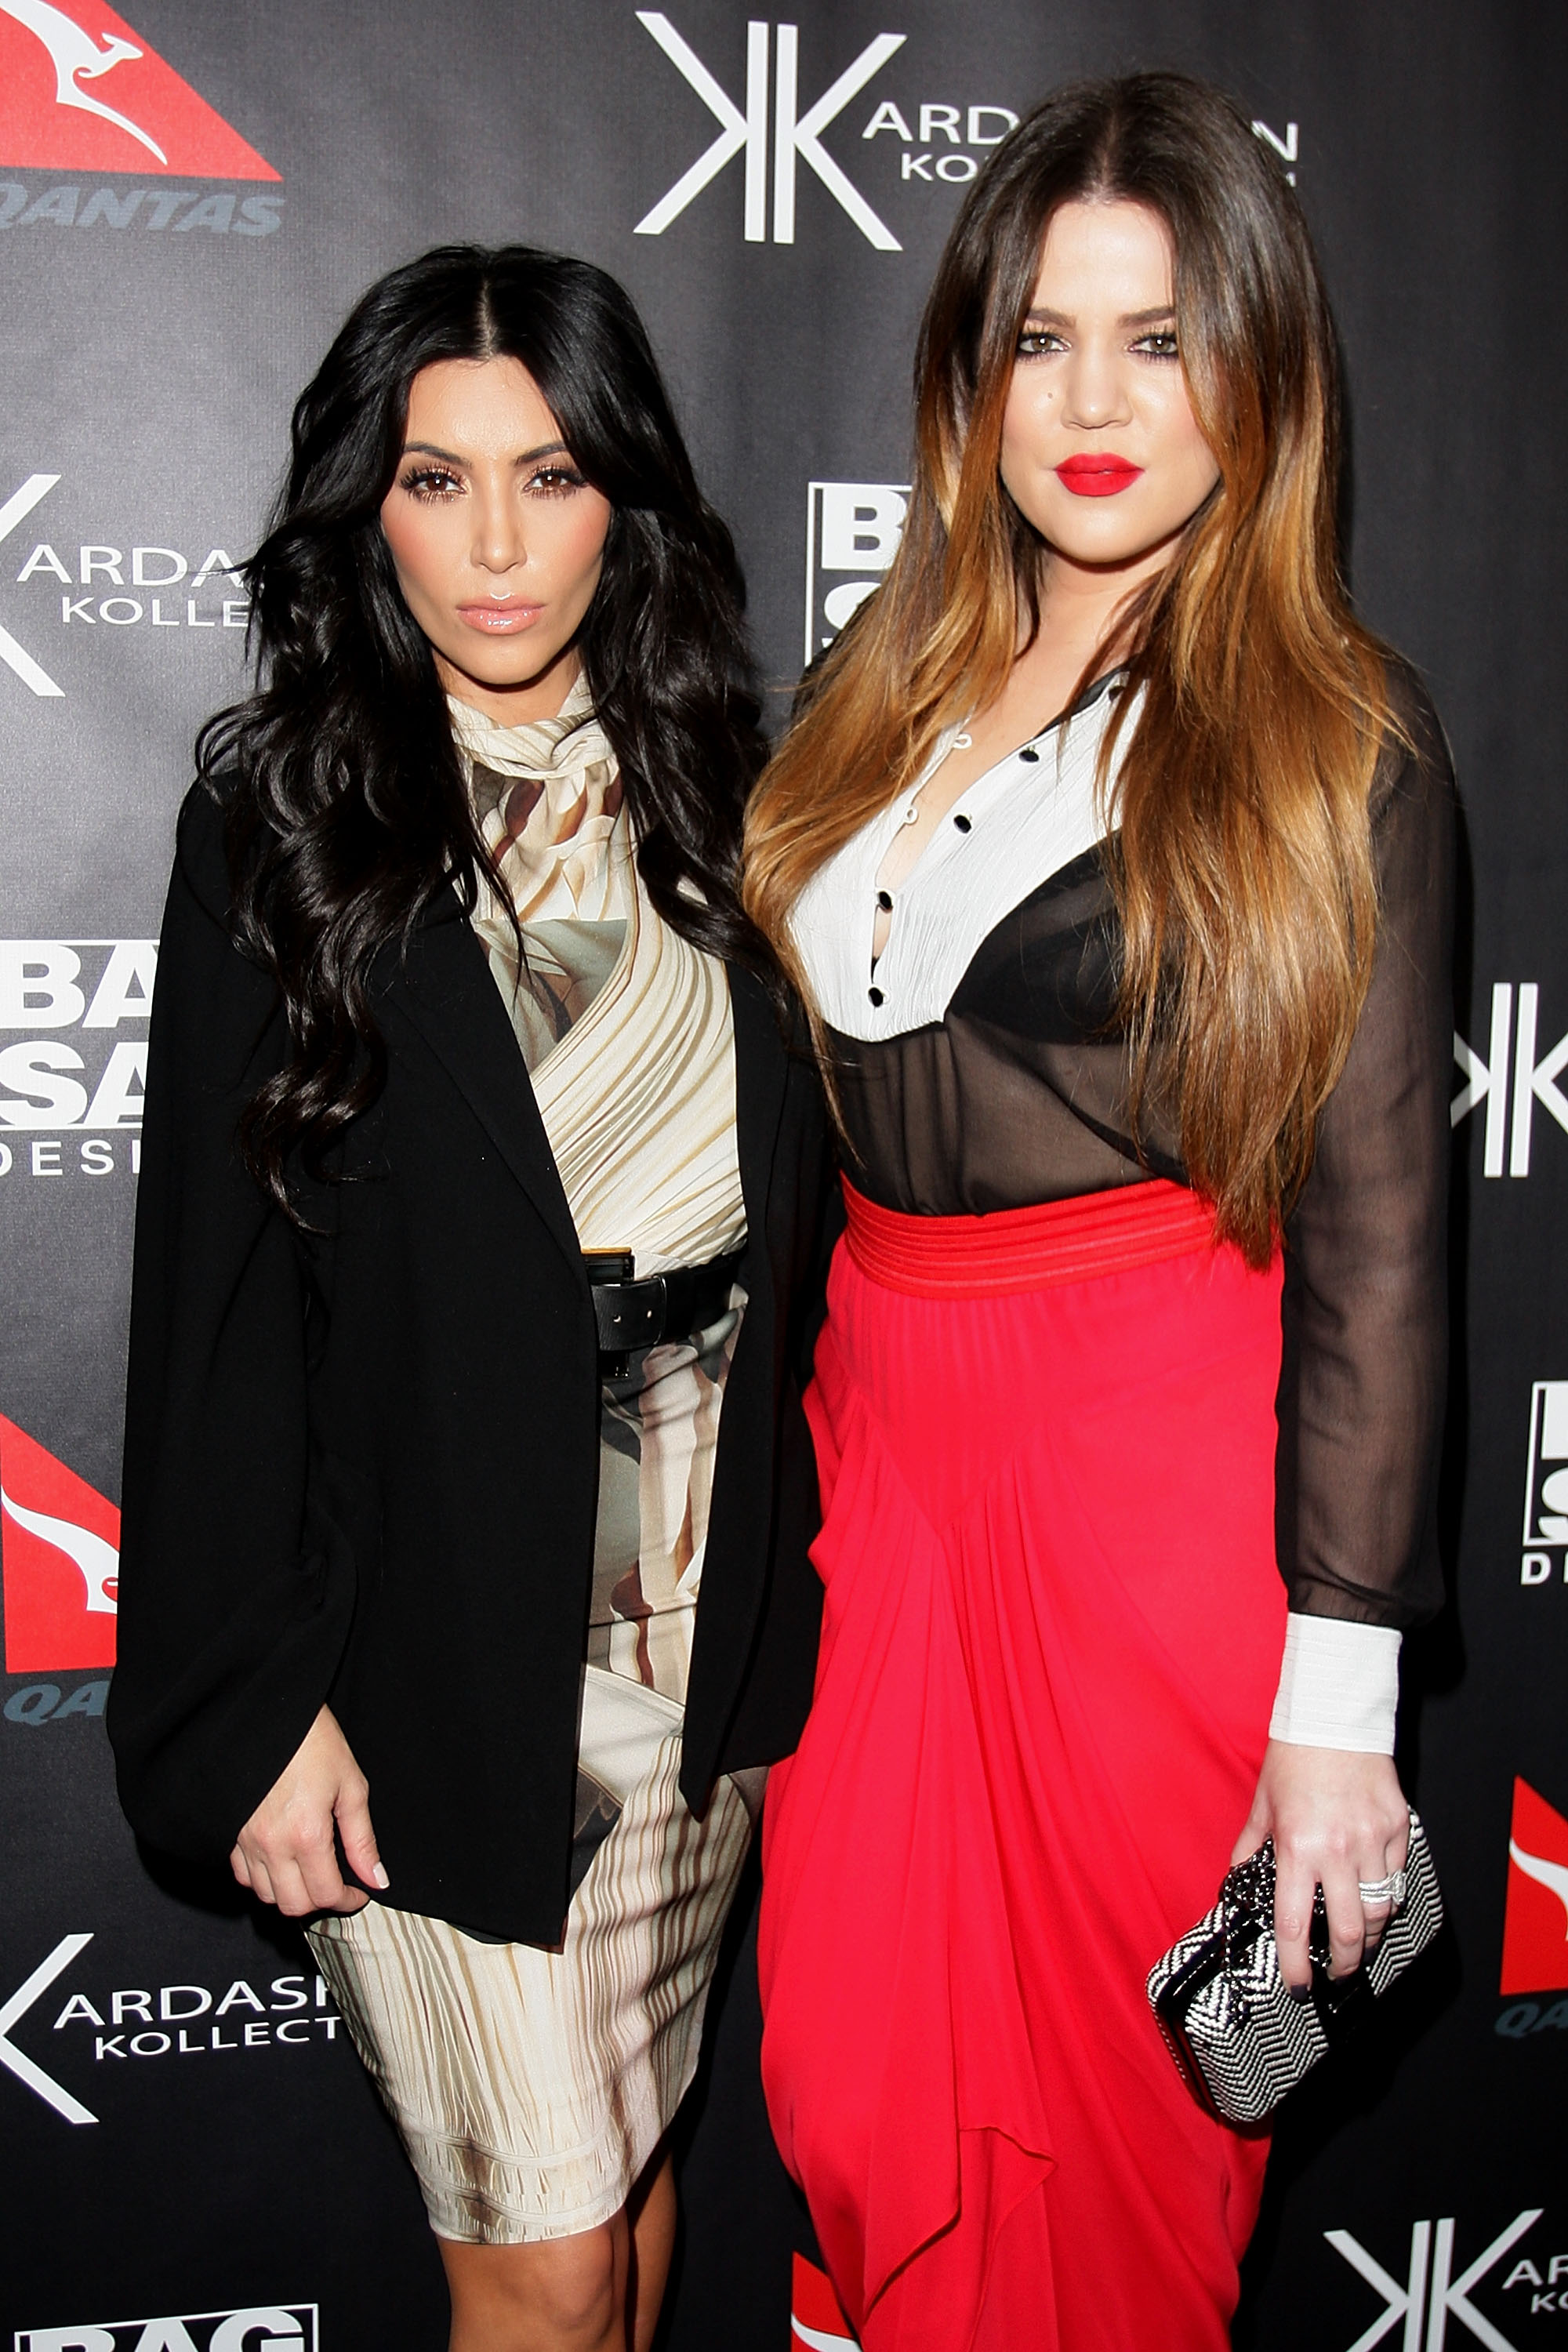 Kim and Khloe Kardashian kept straight faces for the cameras.